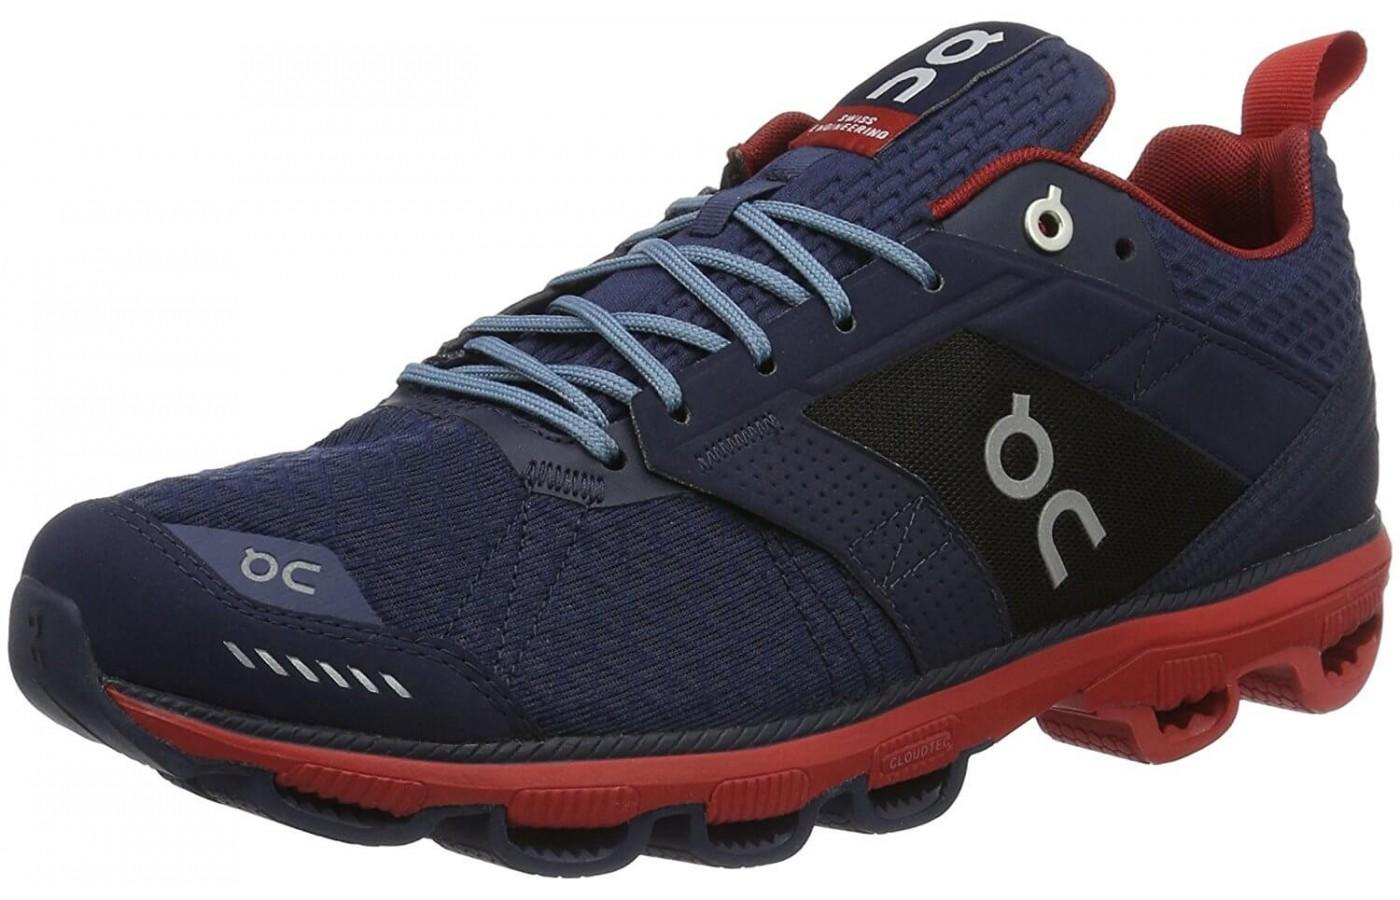 the On Cloudcruiser is a comfortable, breathable low-cut running shoe